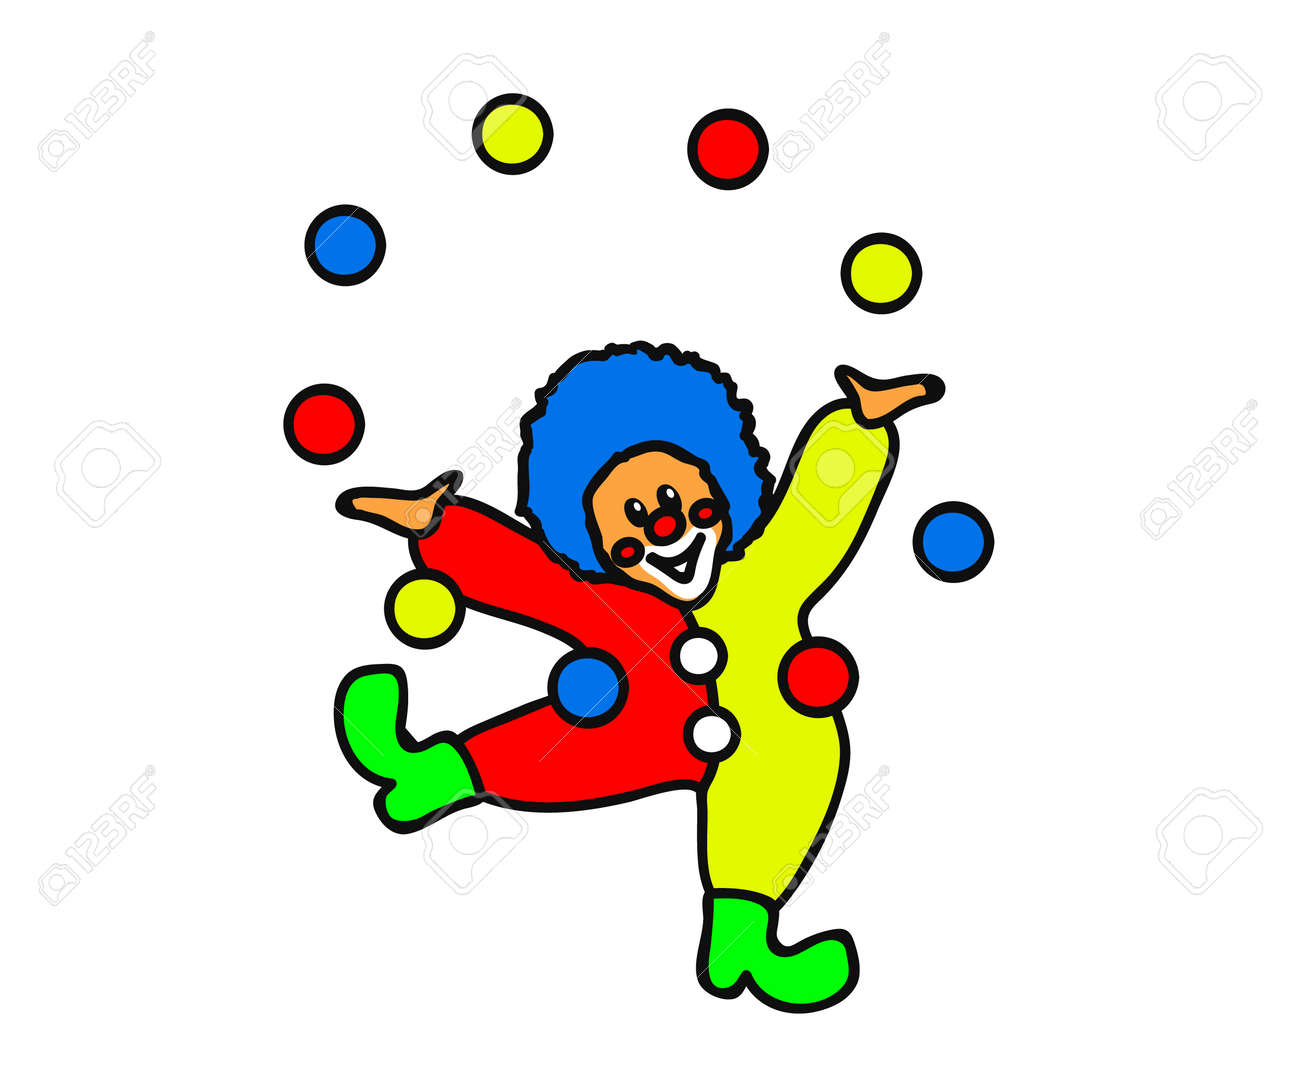 Cheerful clown plays with colorful balls on a white background. Cartoon. Vector illustration. - 165957212